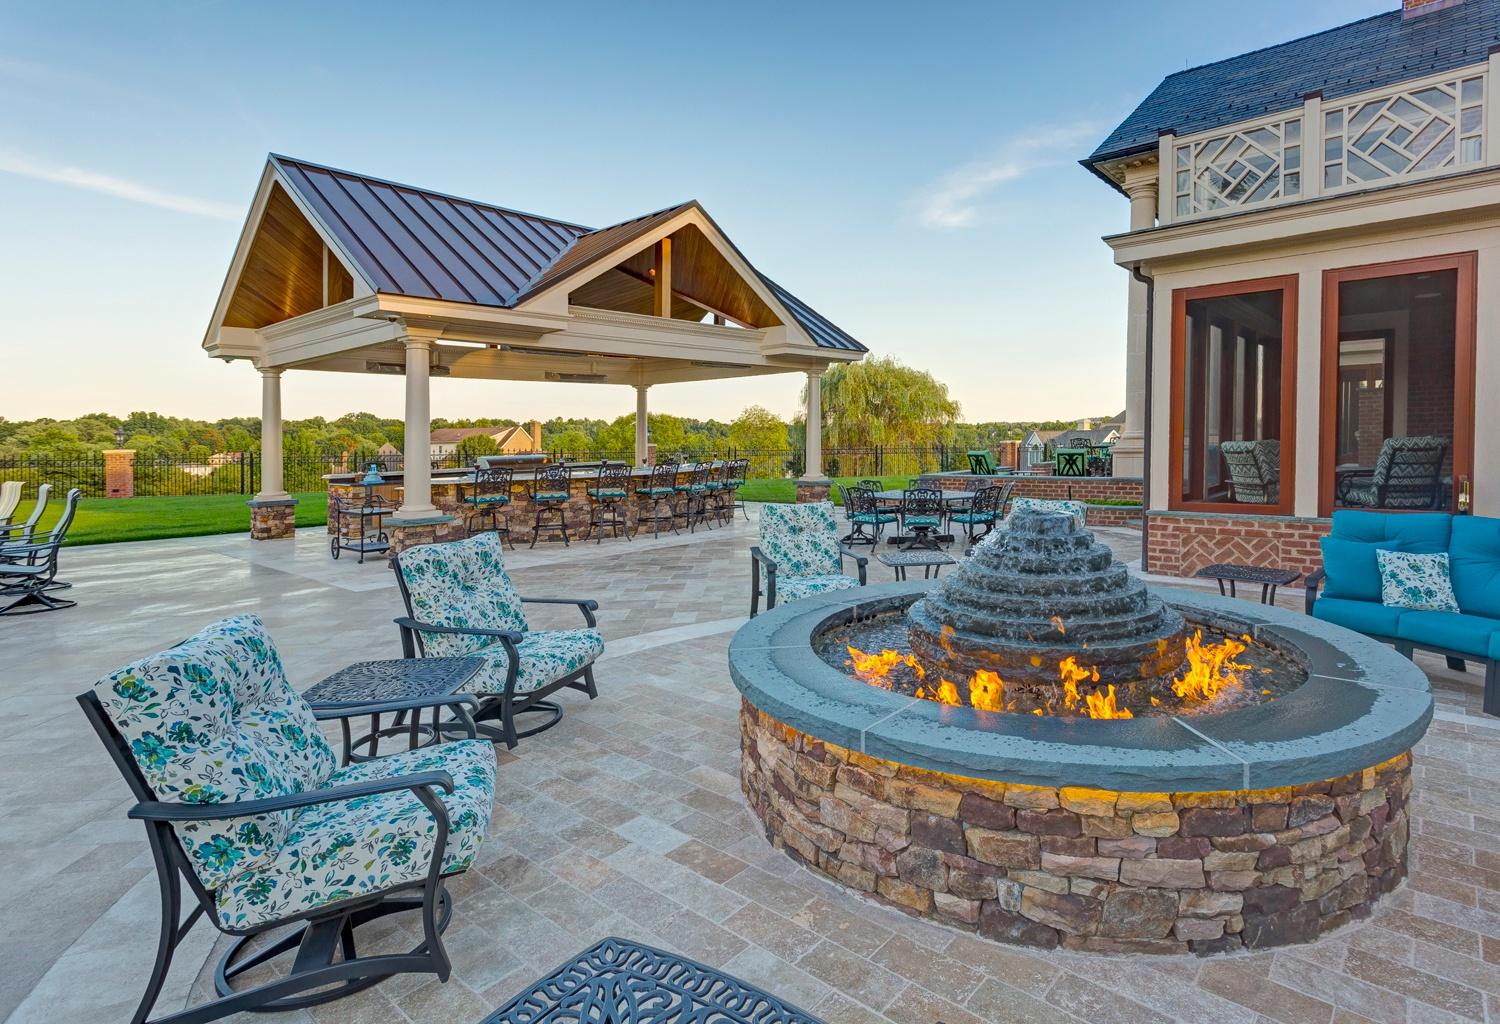 A Review of the Best Landscaping Contractors in Lancaster, PA